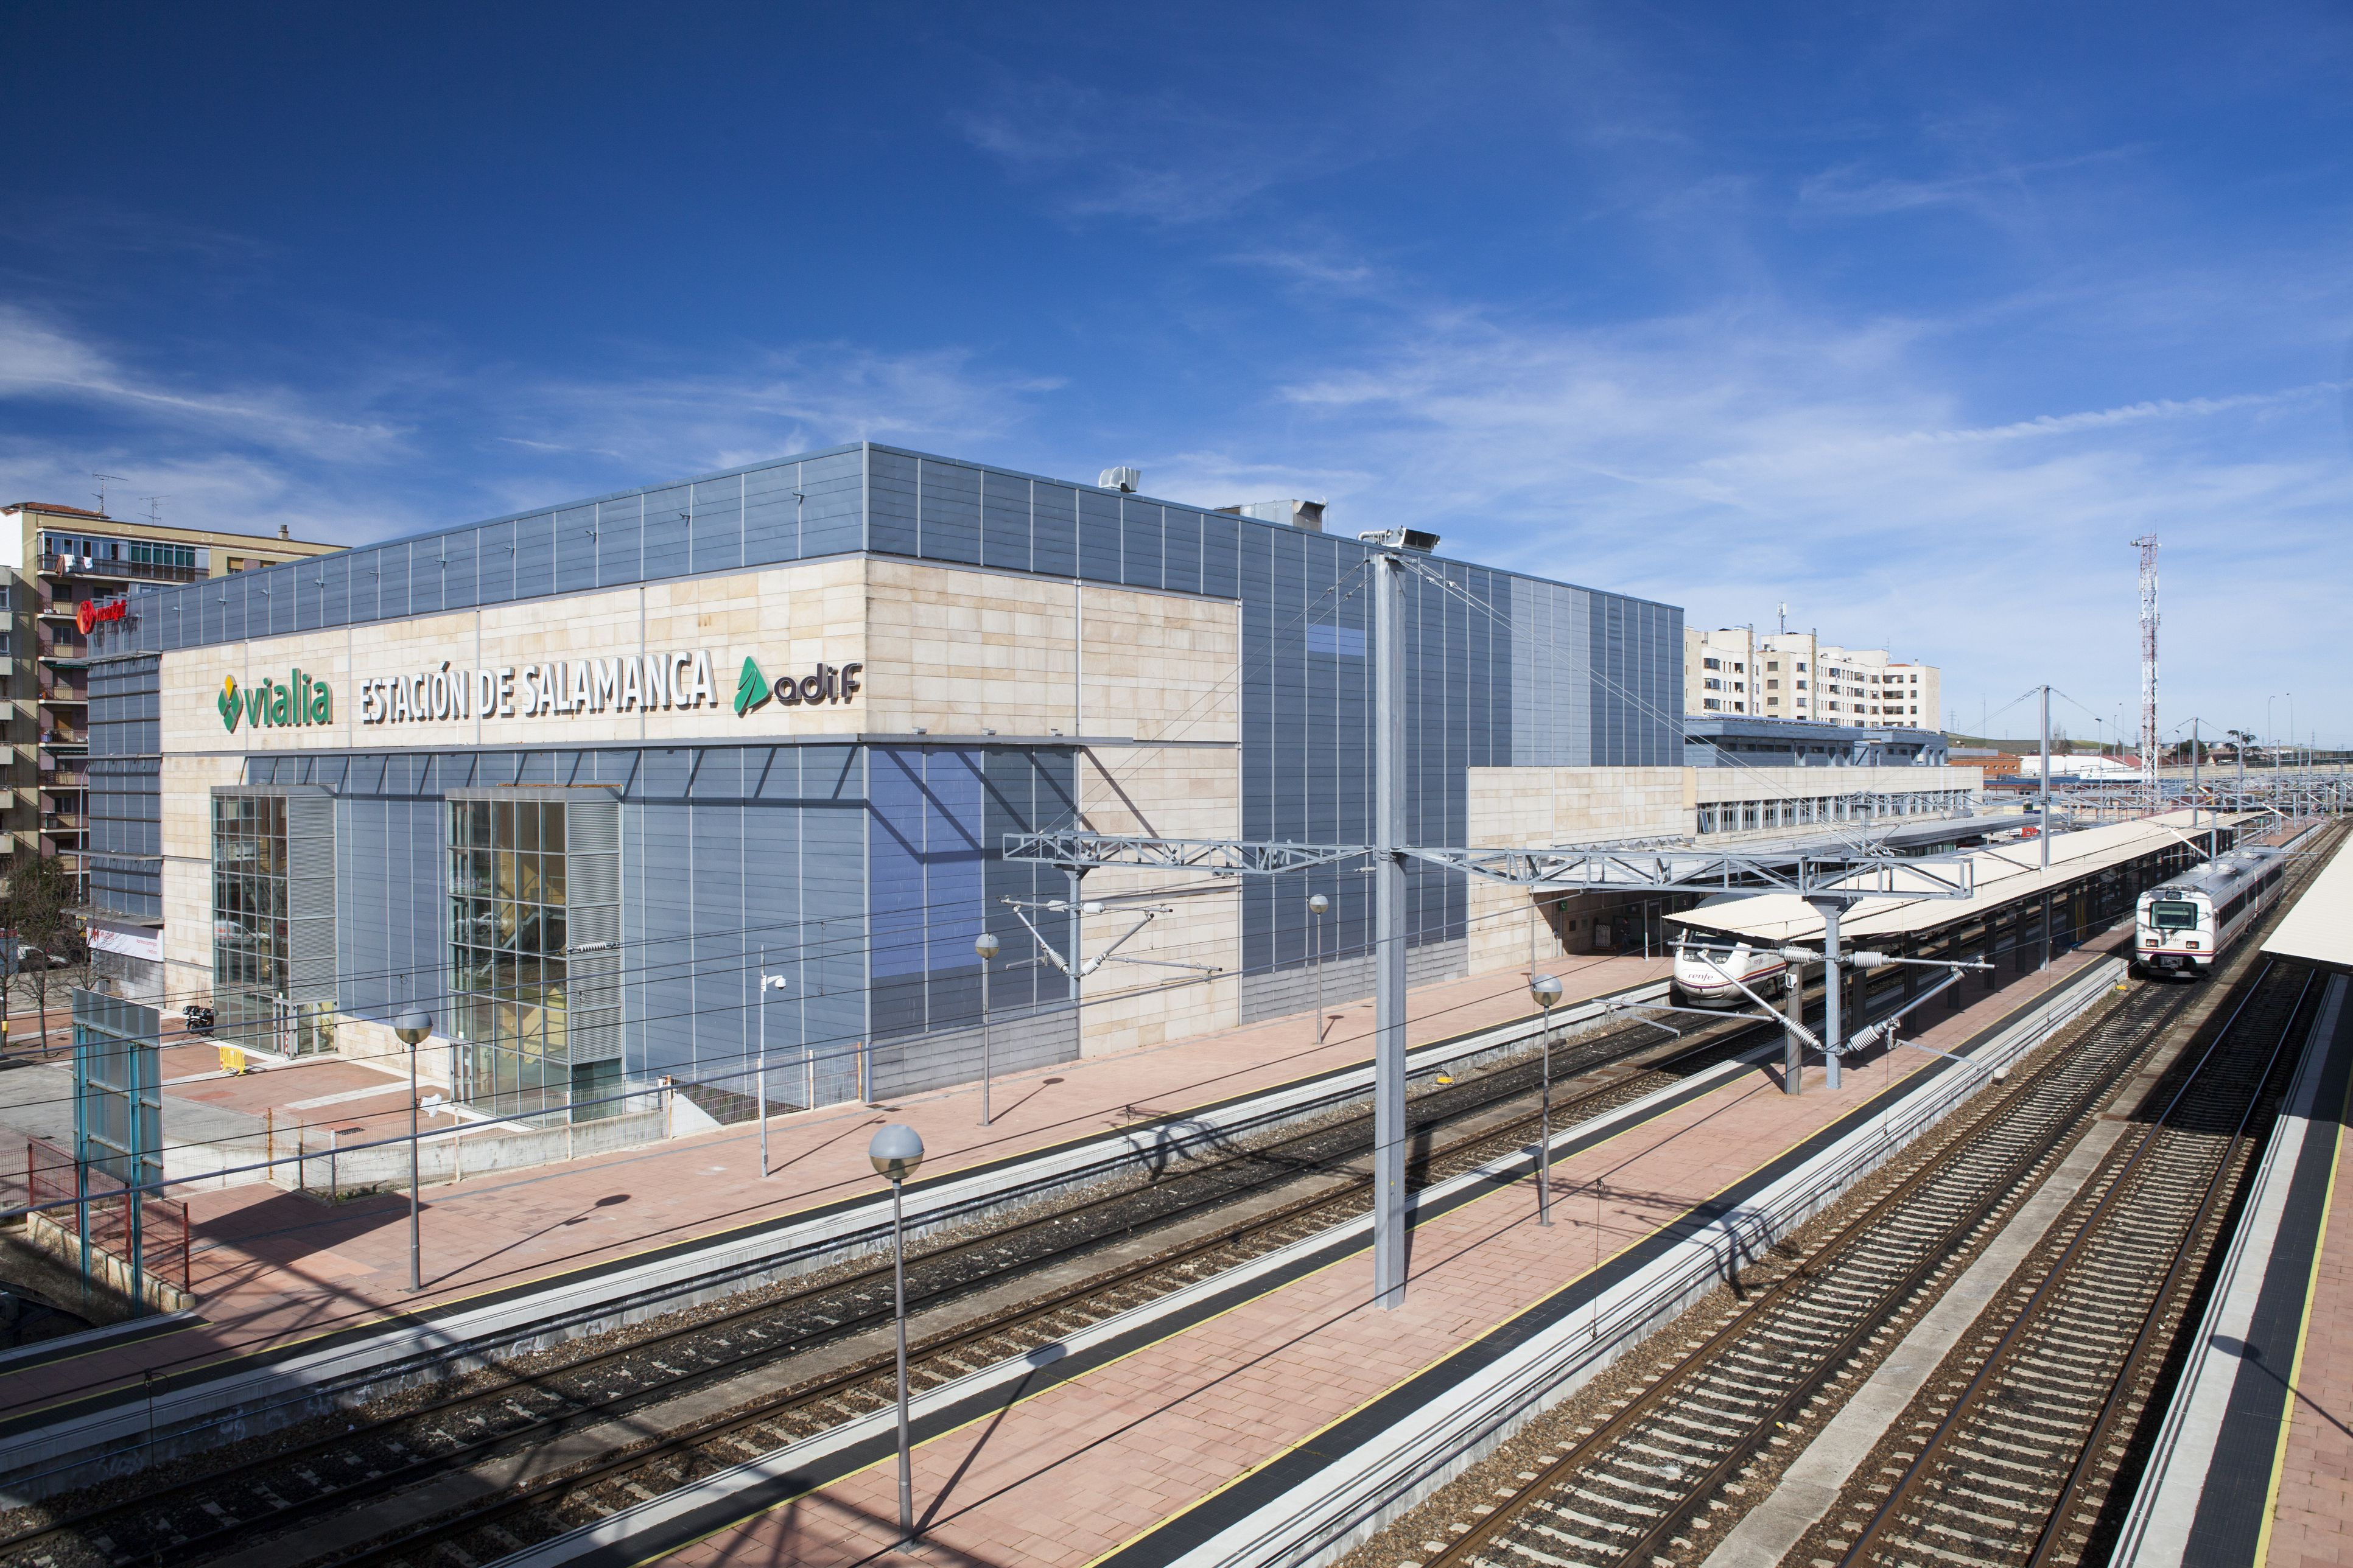 AVE Trains in Spain - High-Speed Rail Routes